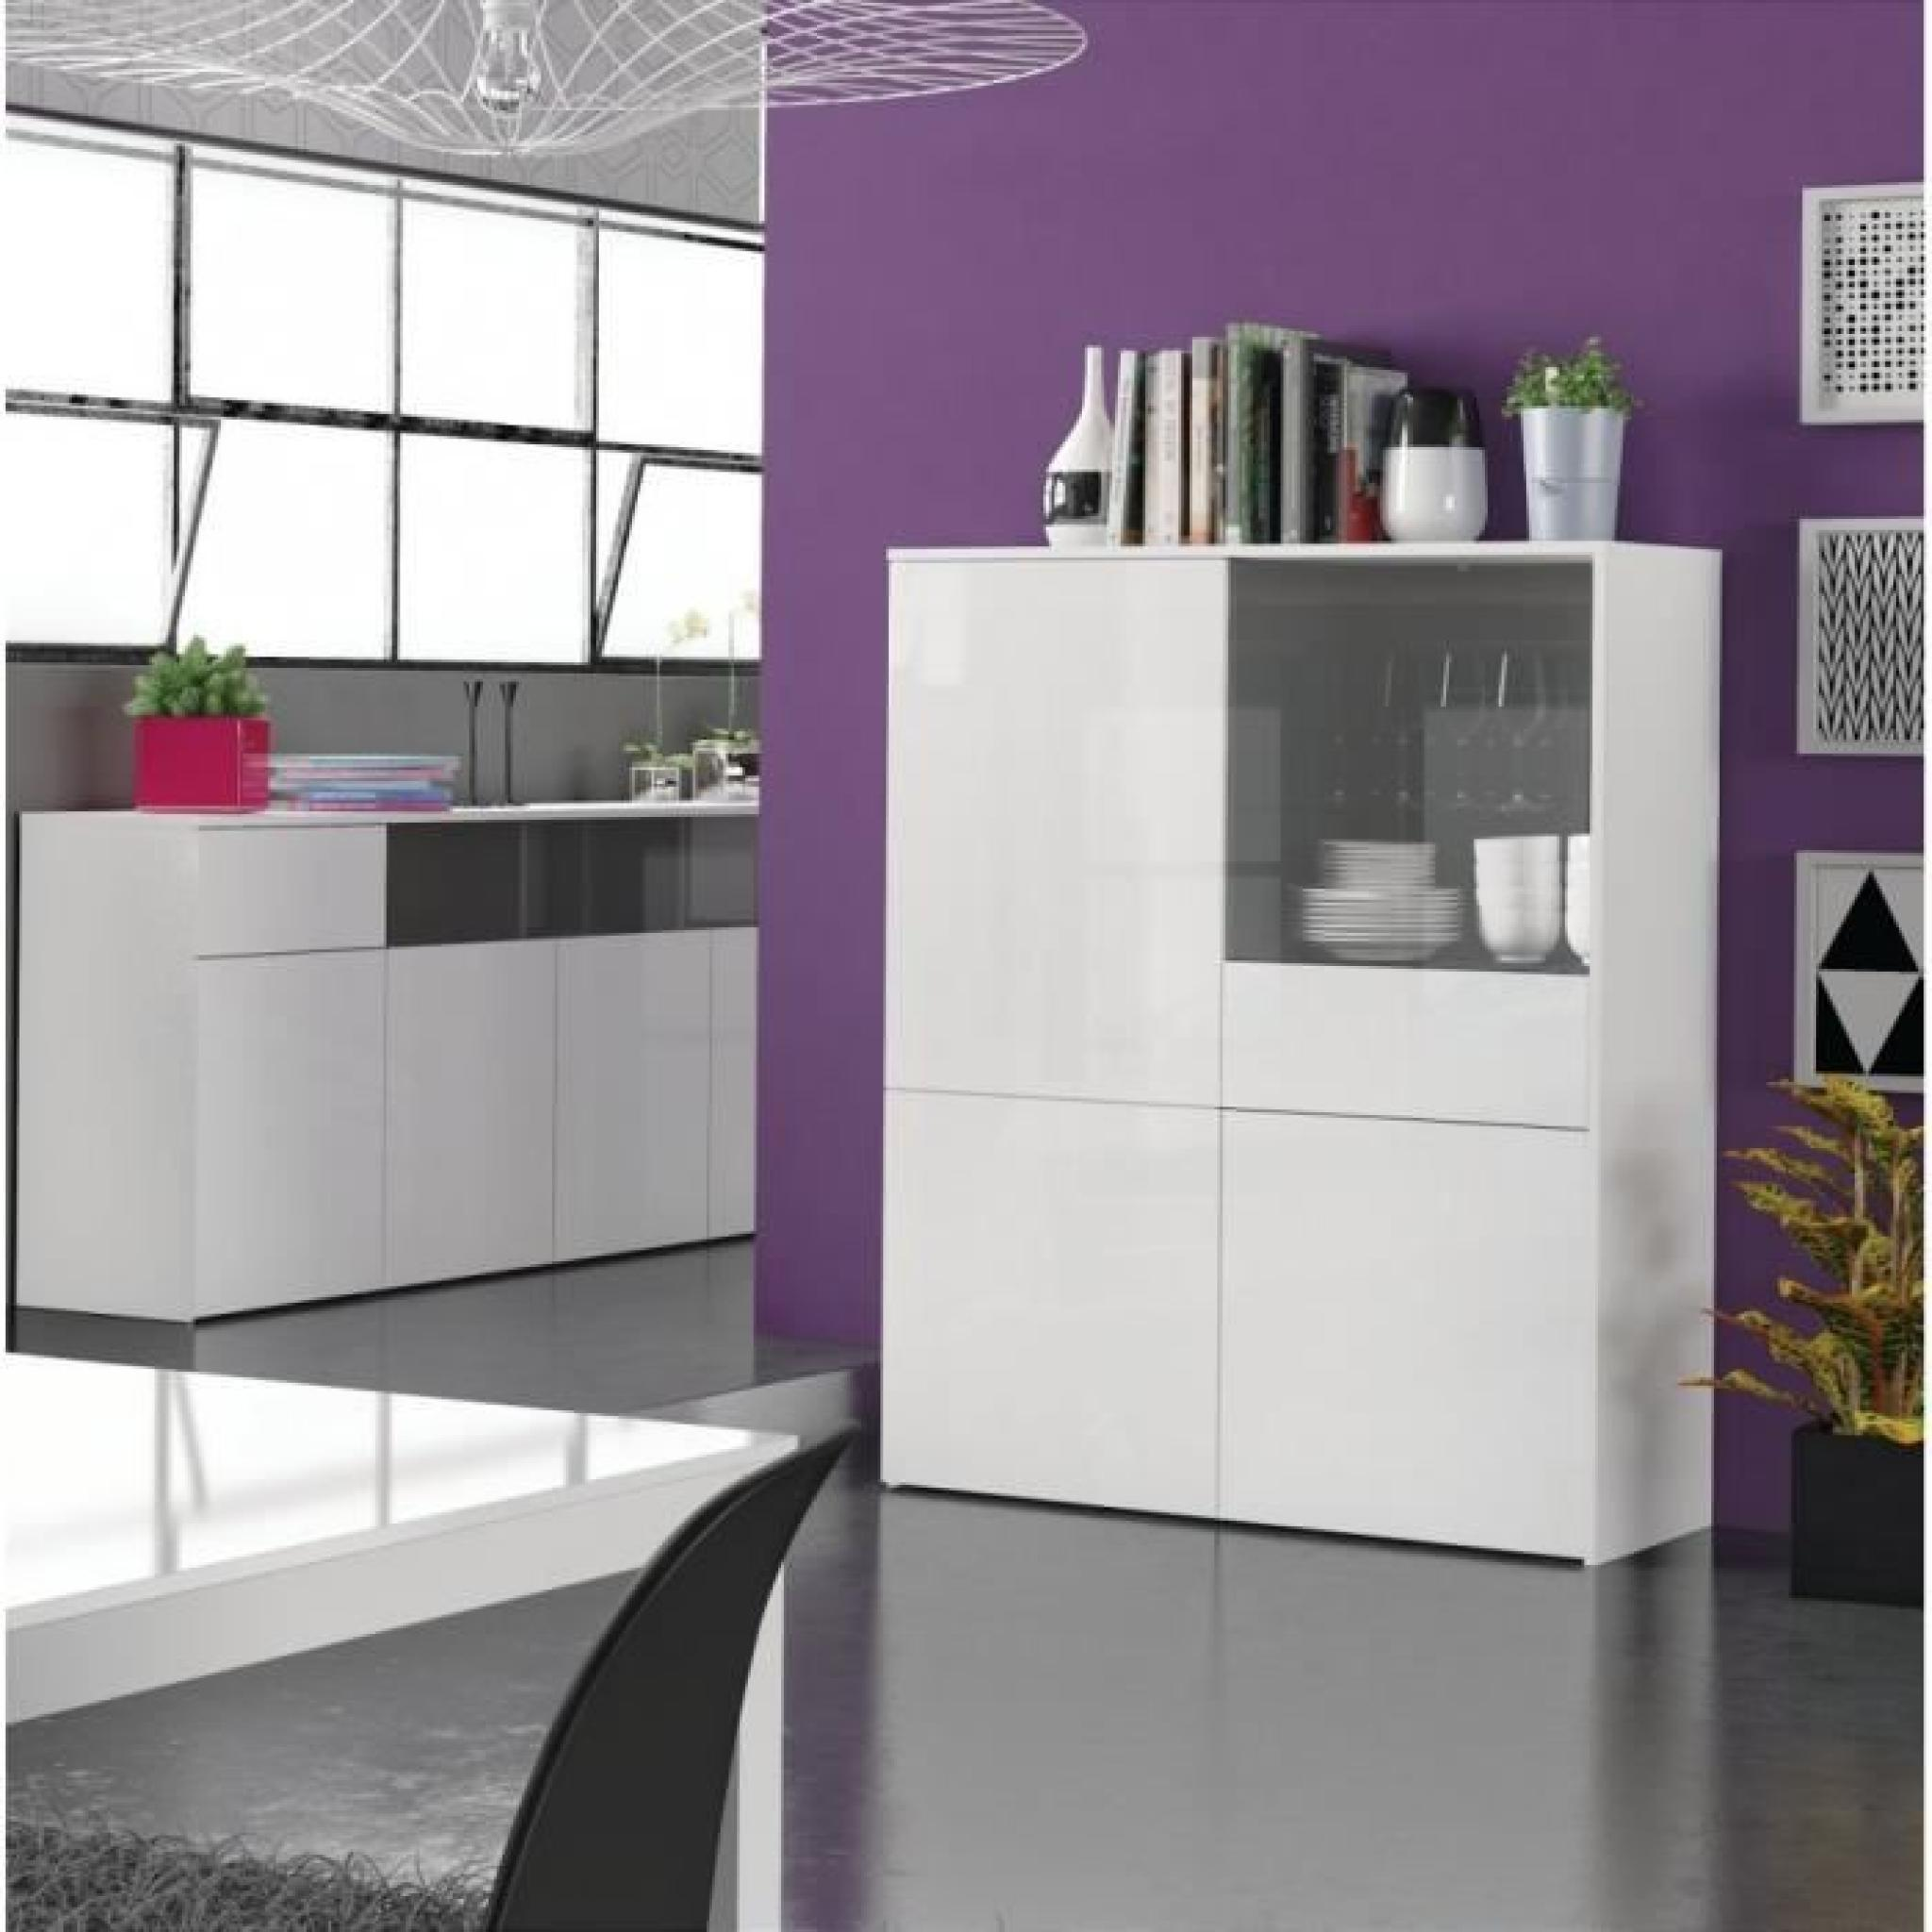 bahut haut blanc brillant malia achat vente buffet pas cher couleur et. Black Bedroom Furniture Sets. Home Design Ideas